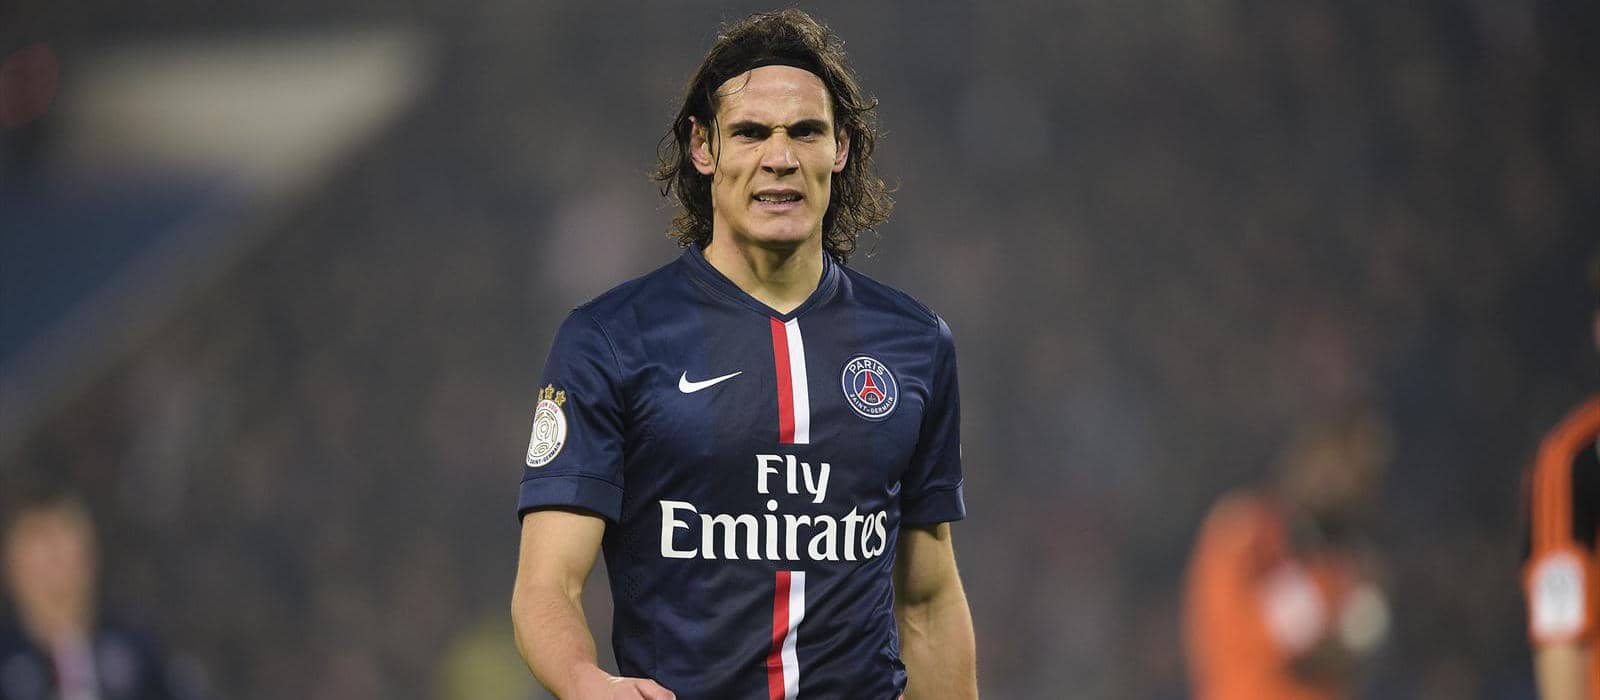 Diego Forlan insists Edinson Cavani hasn't declined just yet